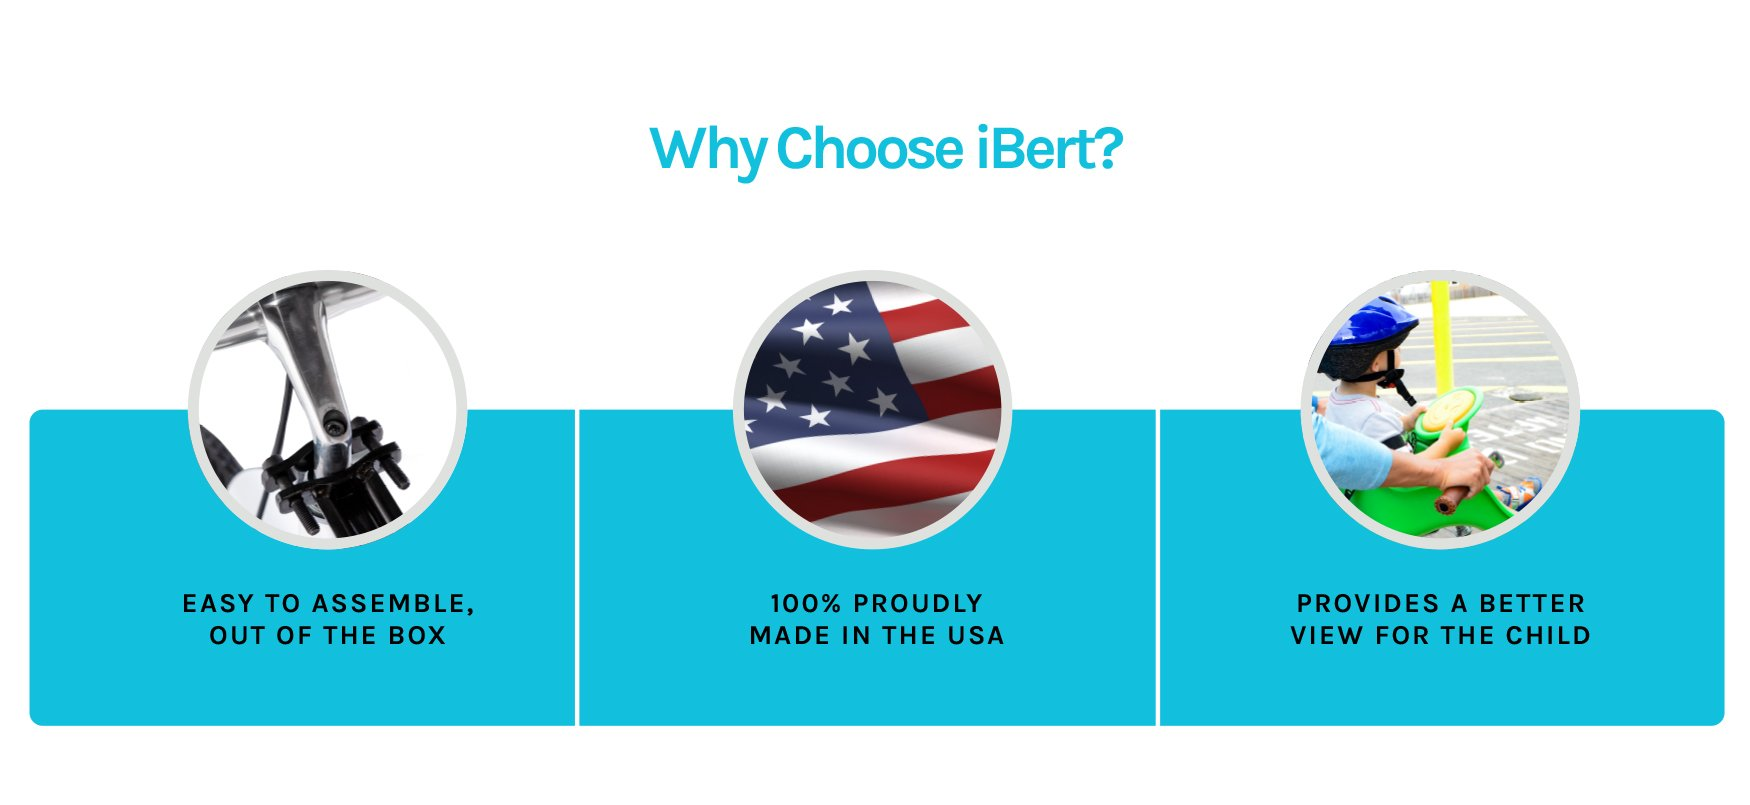 Why Choose iBert? It's easy to assemble, right out of the box. 100% PROUDLY Made in the USA. It provides better view for the child.